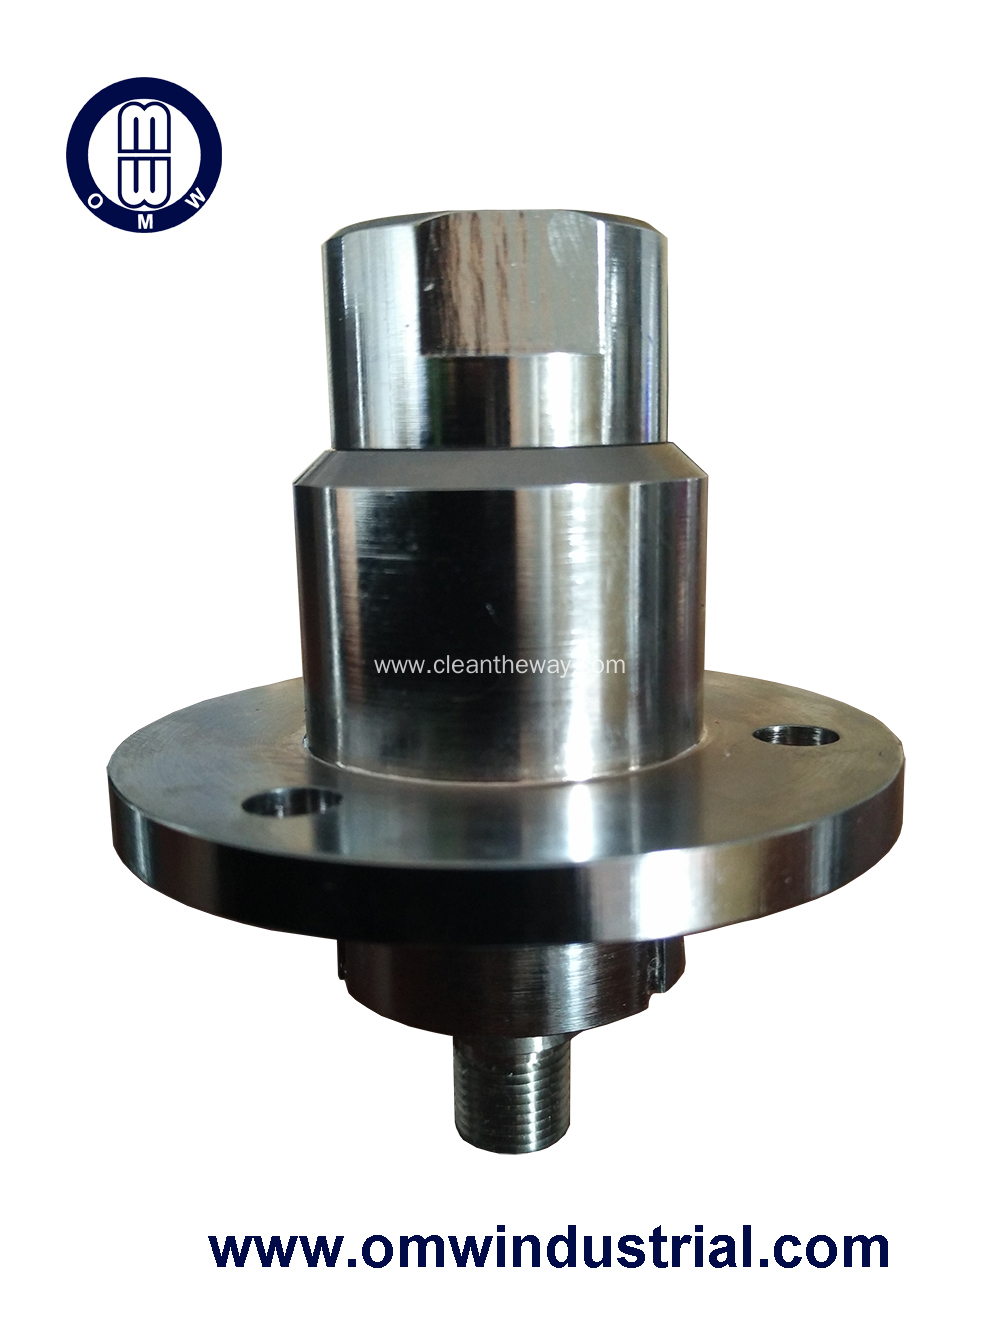 Mini Spindle Rotary Head for Surface Cleaner